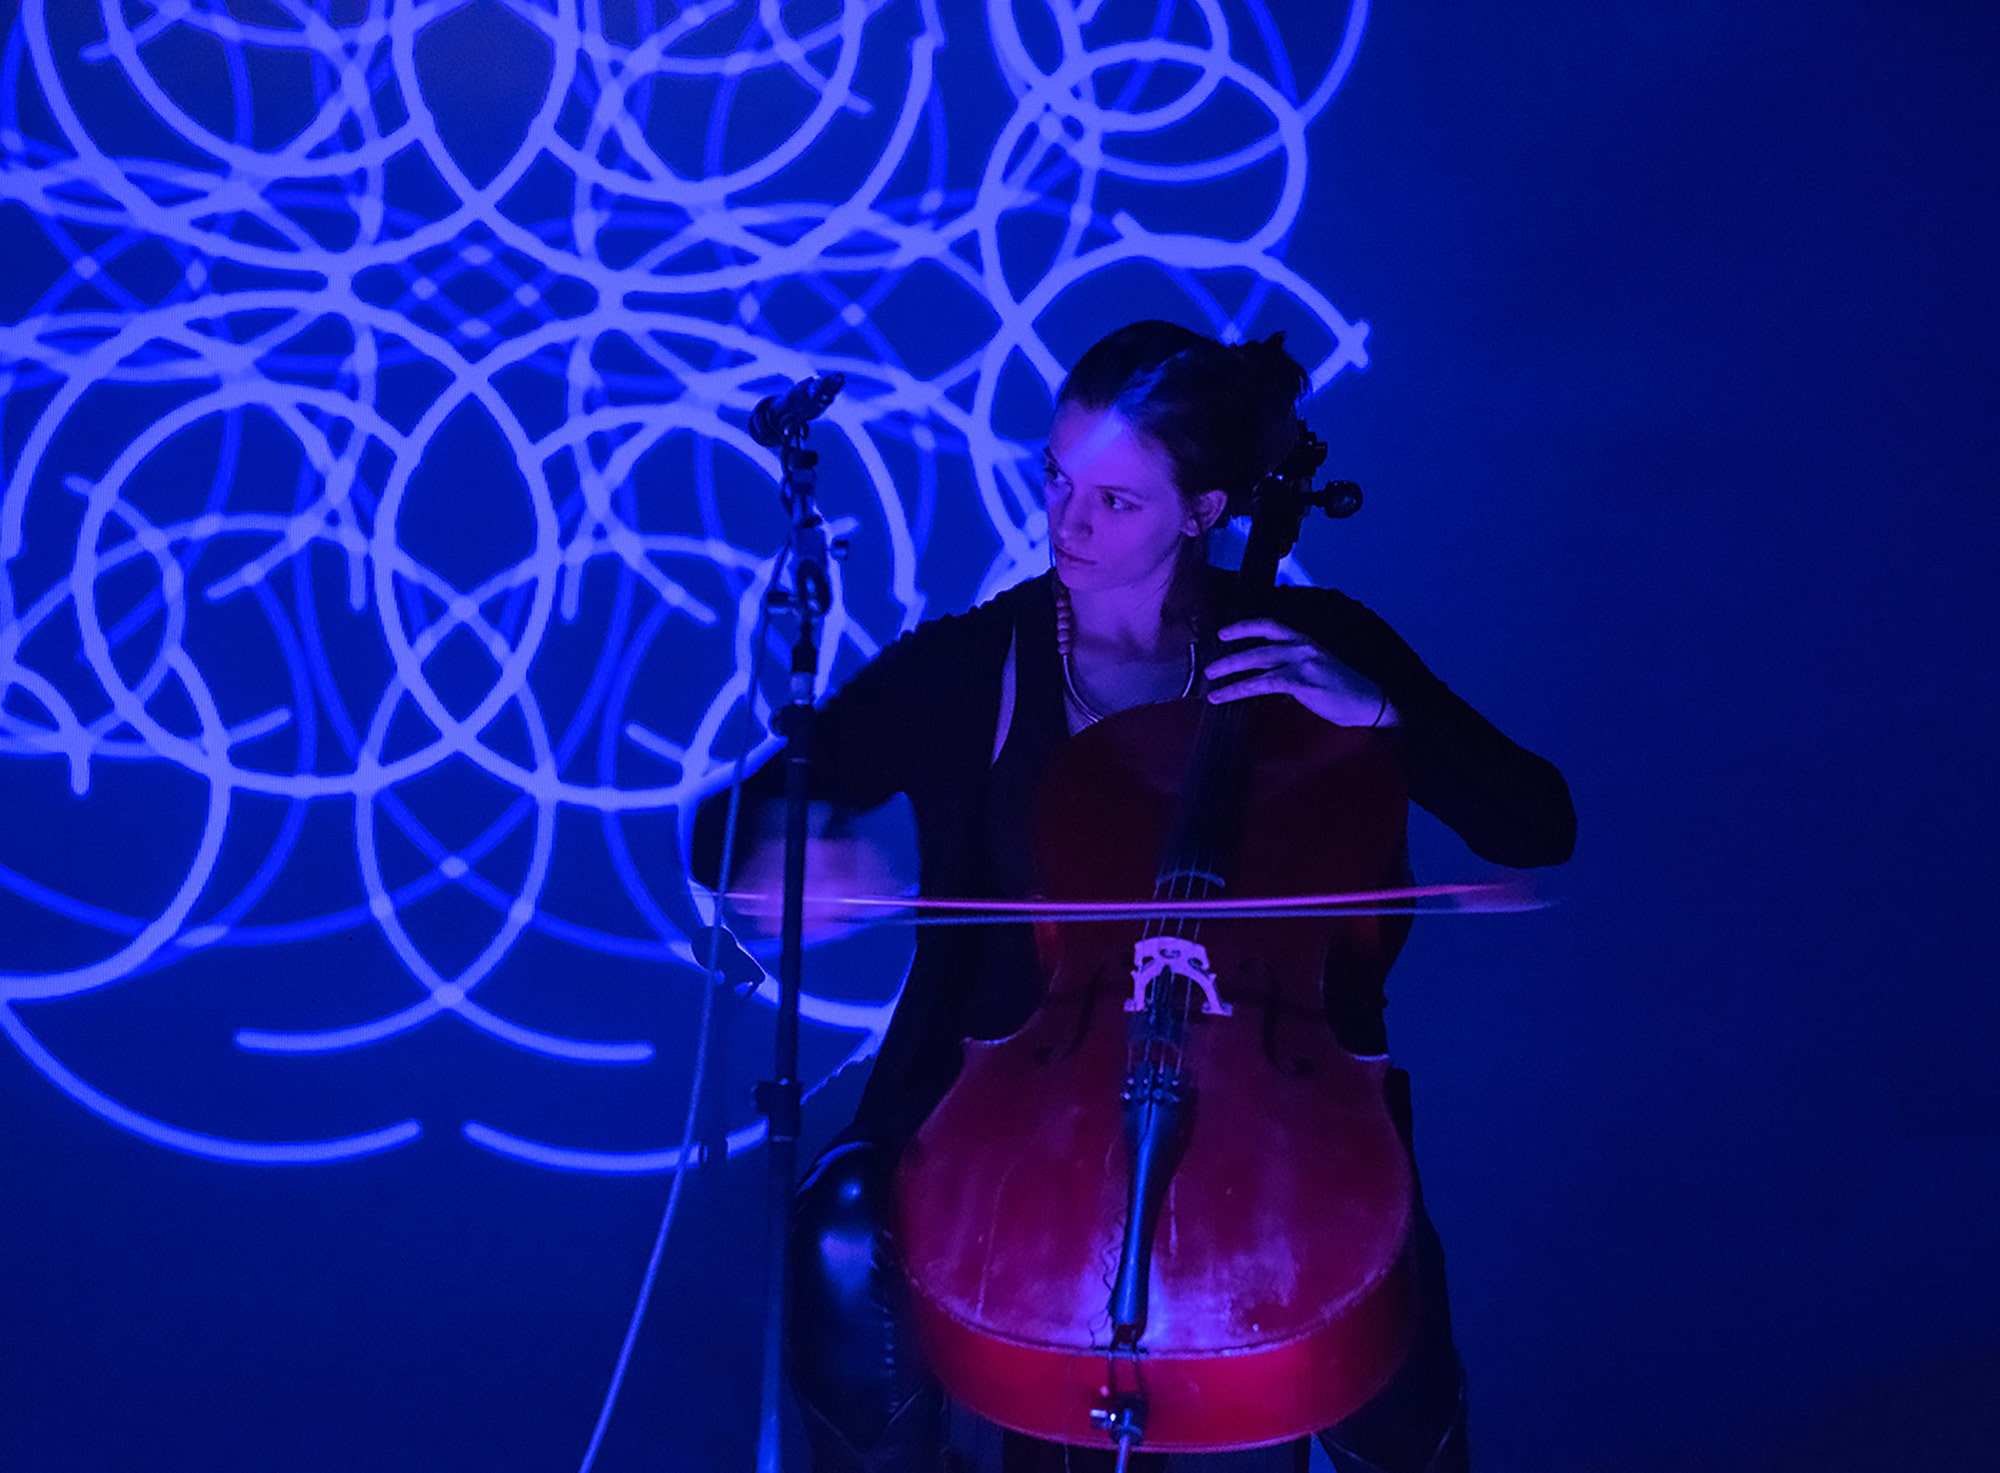 Meaghan Burke performing Randy Gibson's <em>Apparitions of The Four Pillars in The Midwinter Starfield Symmetry under The 72:81:88 Confluence</em> in a setting of <em>Quadrilateral Starfield Symmetry A:L Base 11:273 in The 181 Profusion</em>